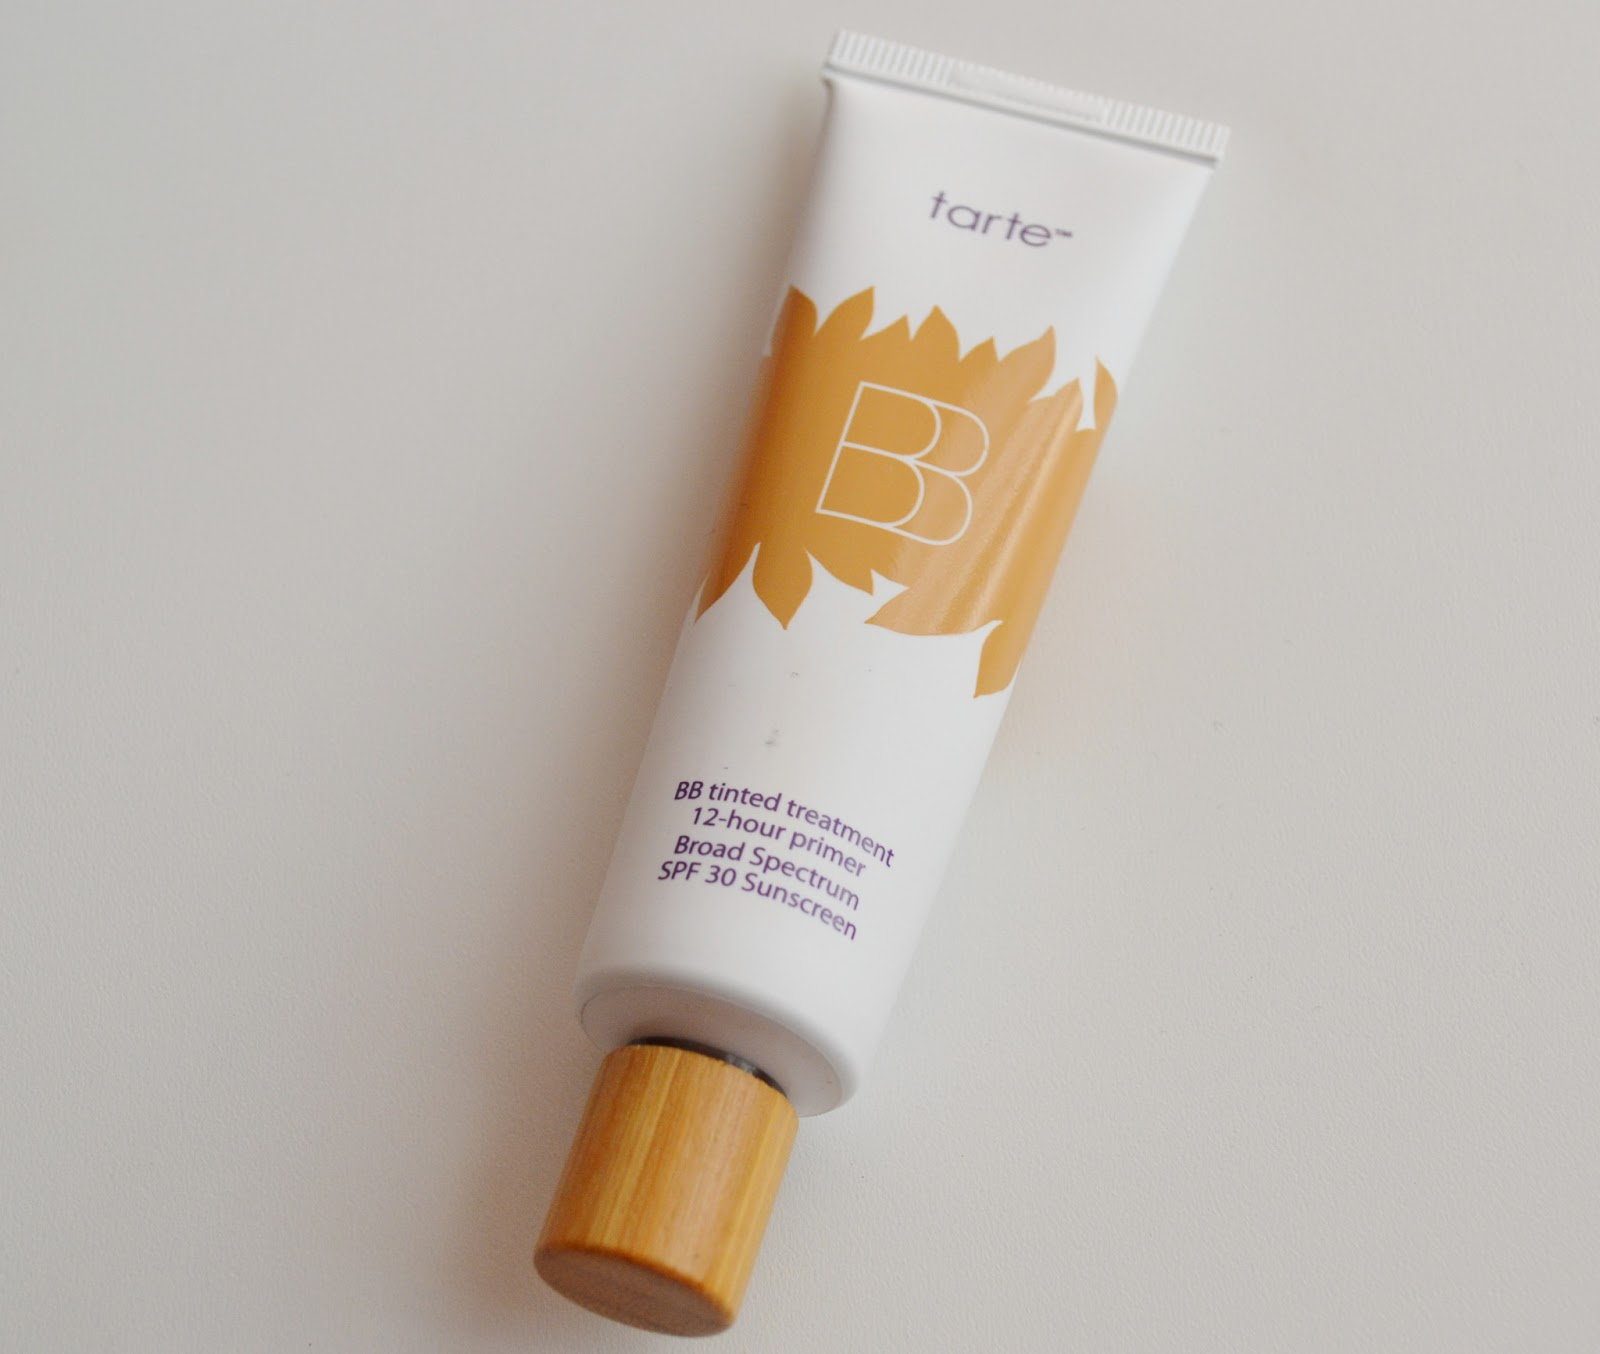 Aquaheart: Tarte Cosmetics BB tinted treatment 12-hour primer Broad ...